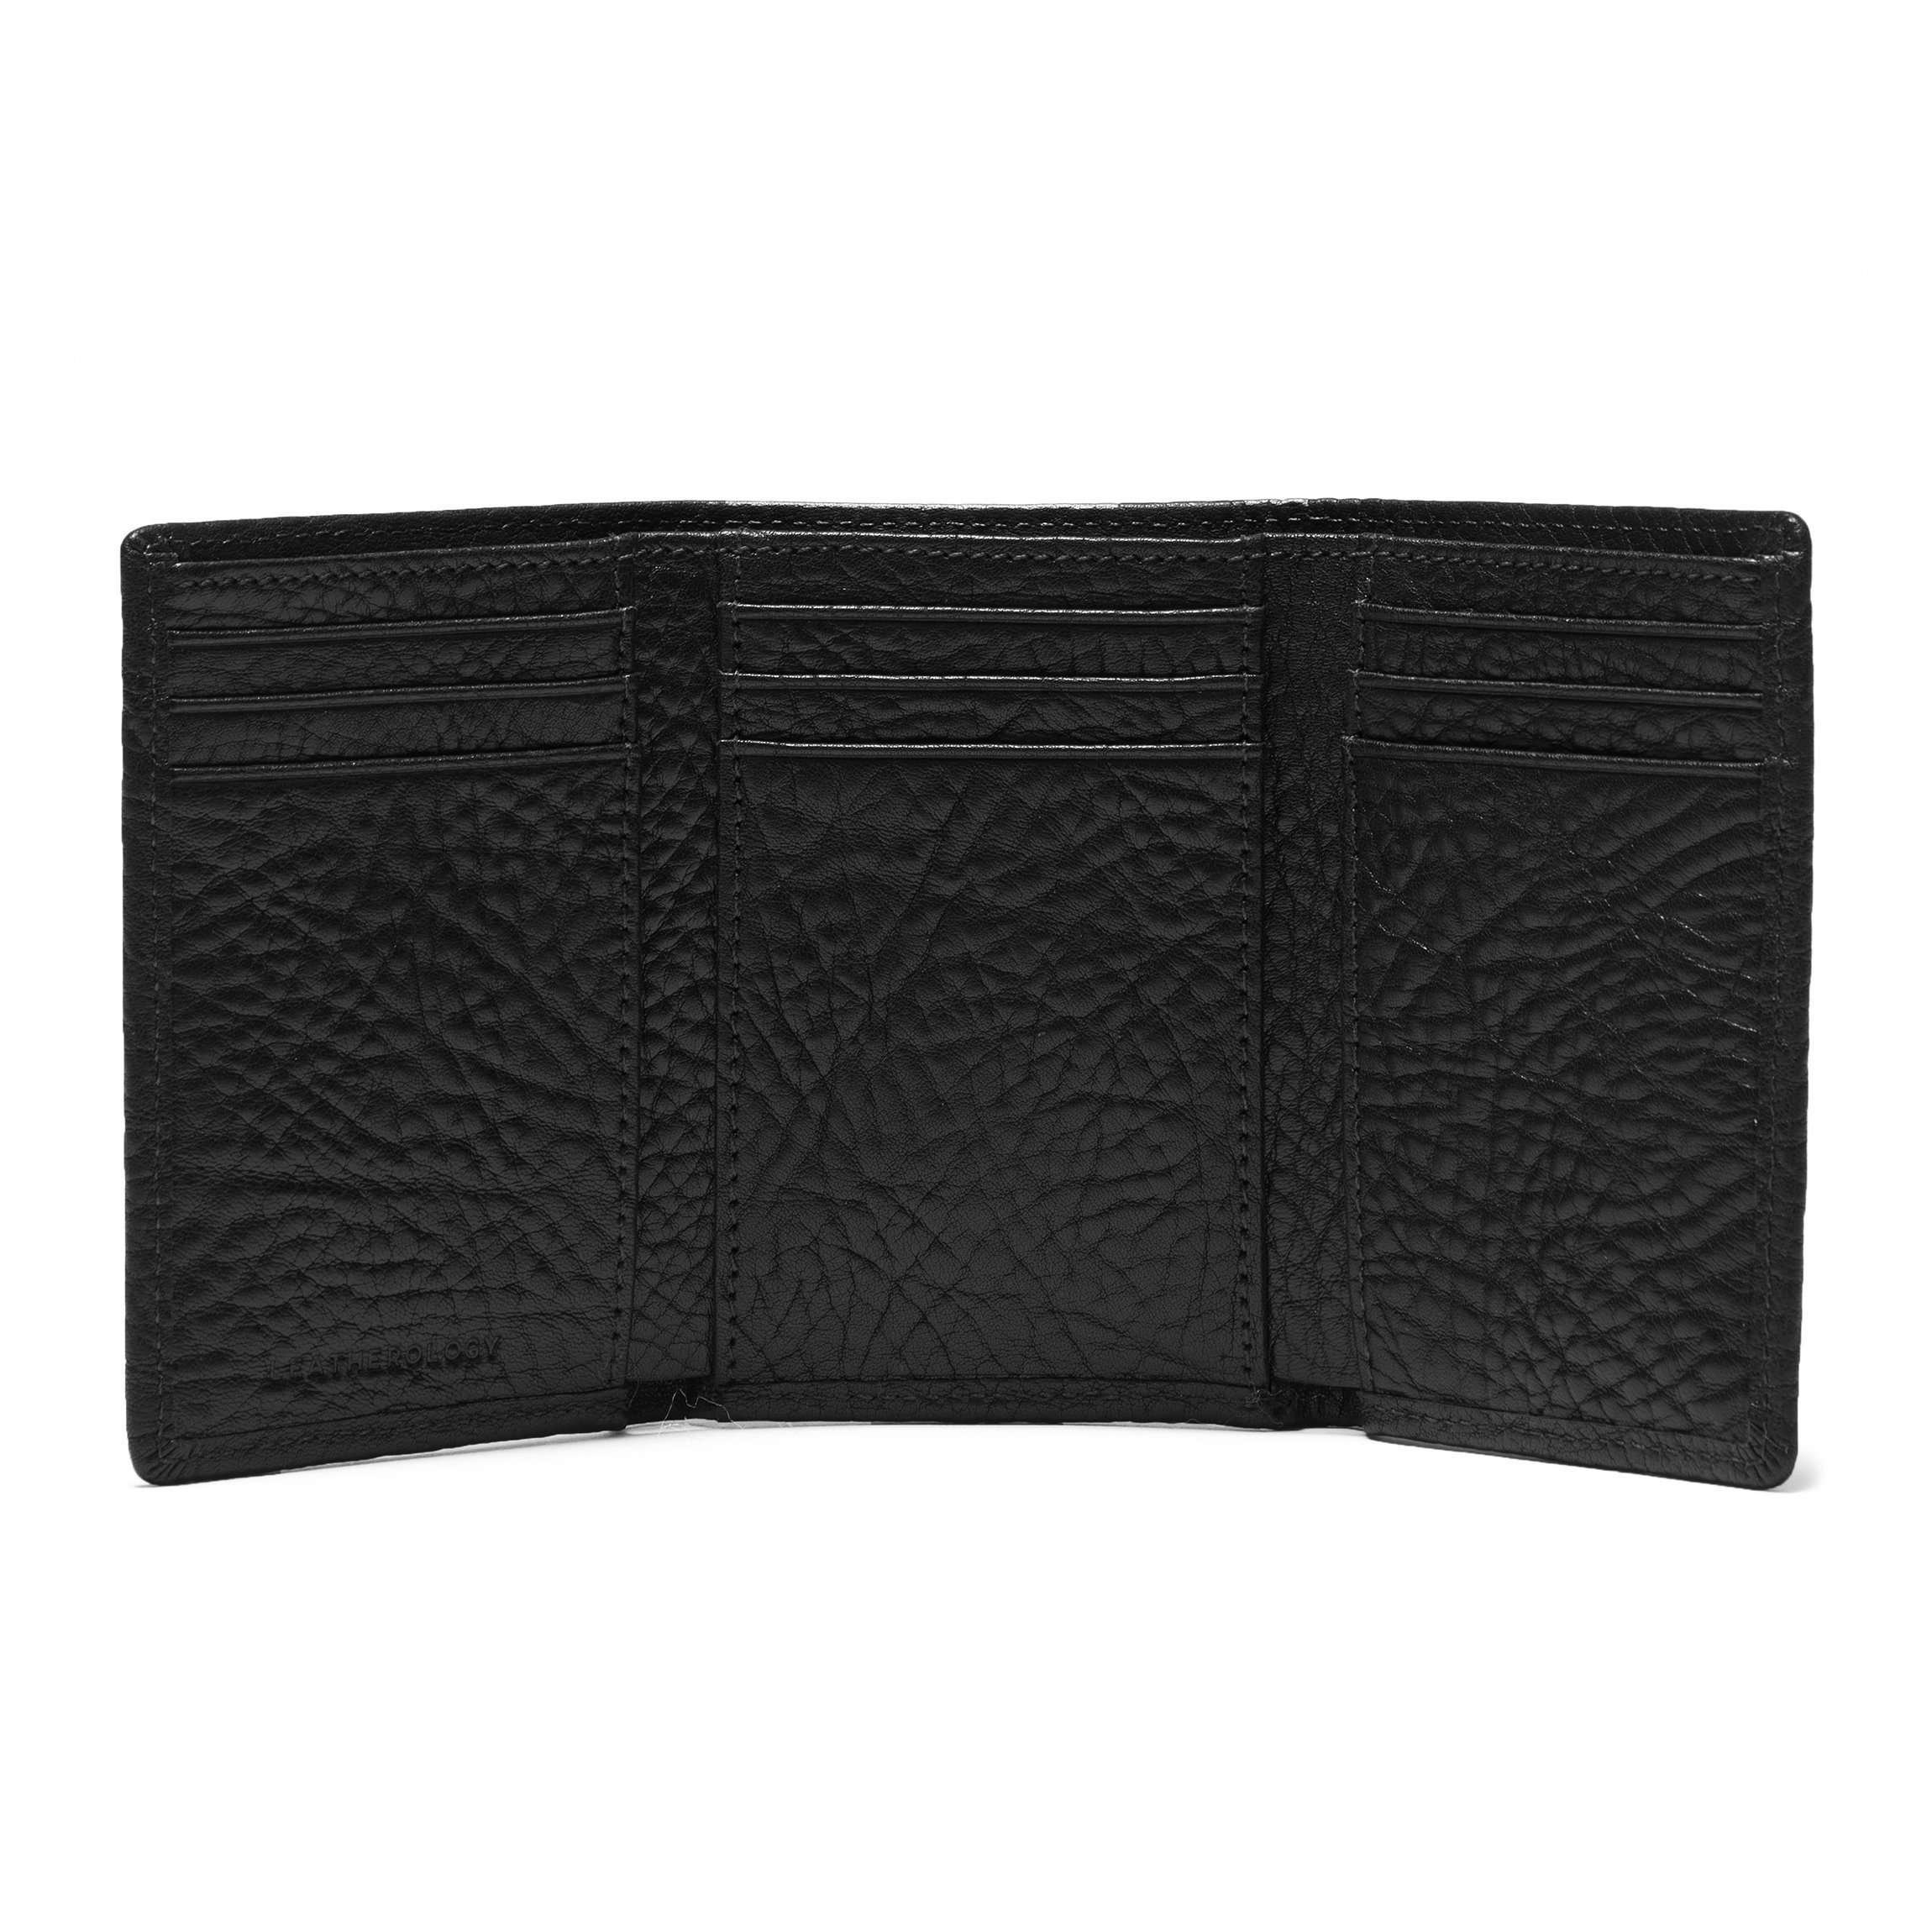 Trifold with Card Wallet - Full Grain Italian Leather Leather - Ebony (black) by Leatherology (Image #3)